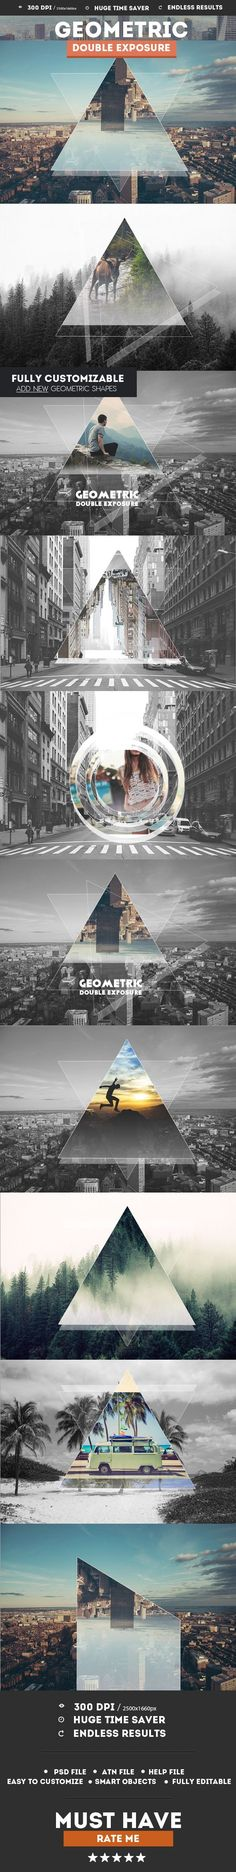 Geometric Double Exposure Photoshop Creator - Photo Effects Actions. Photoshop tips. Nordic360.